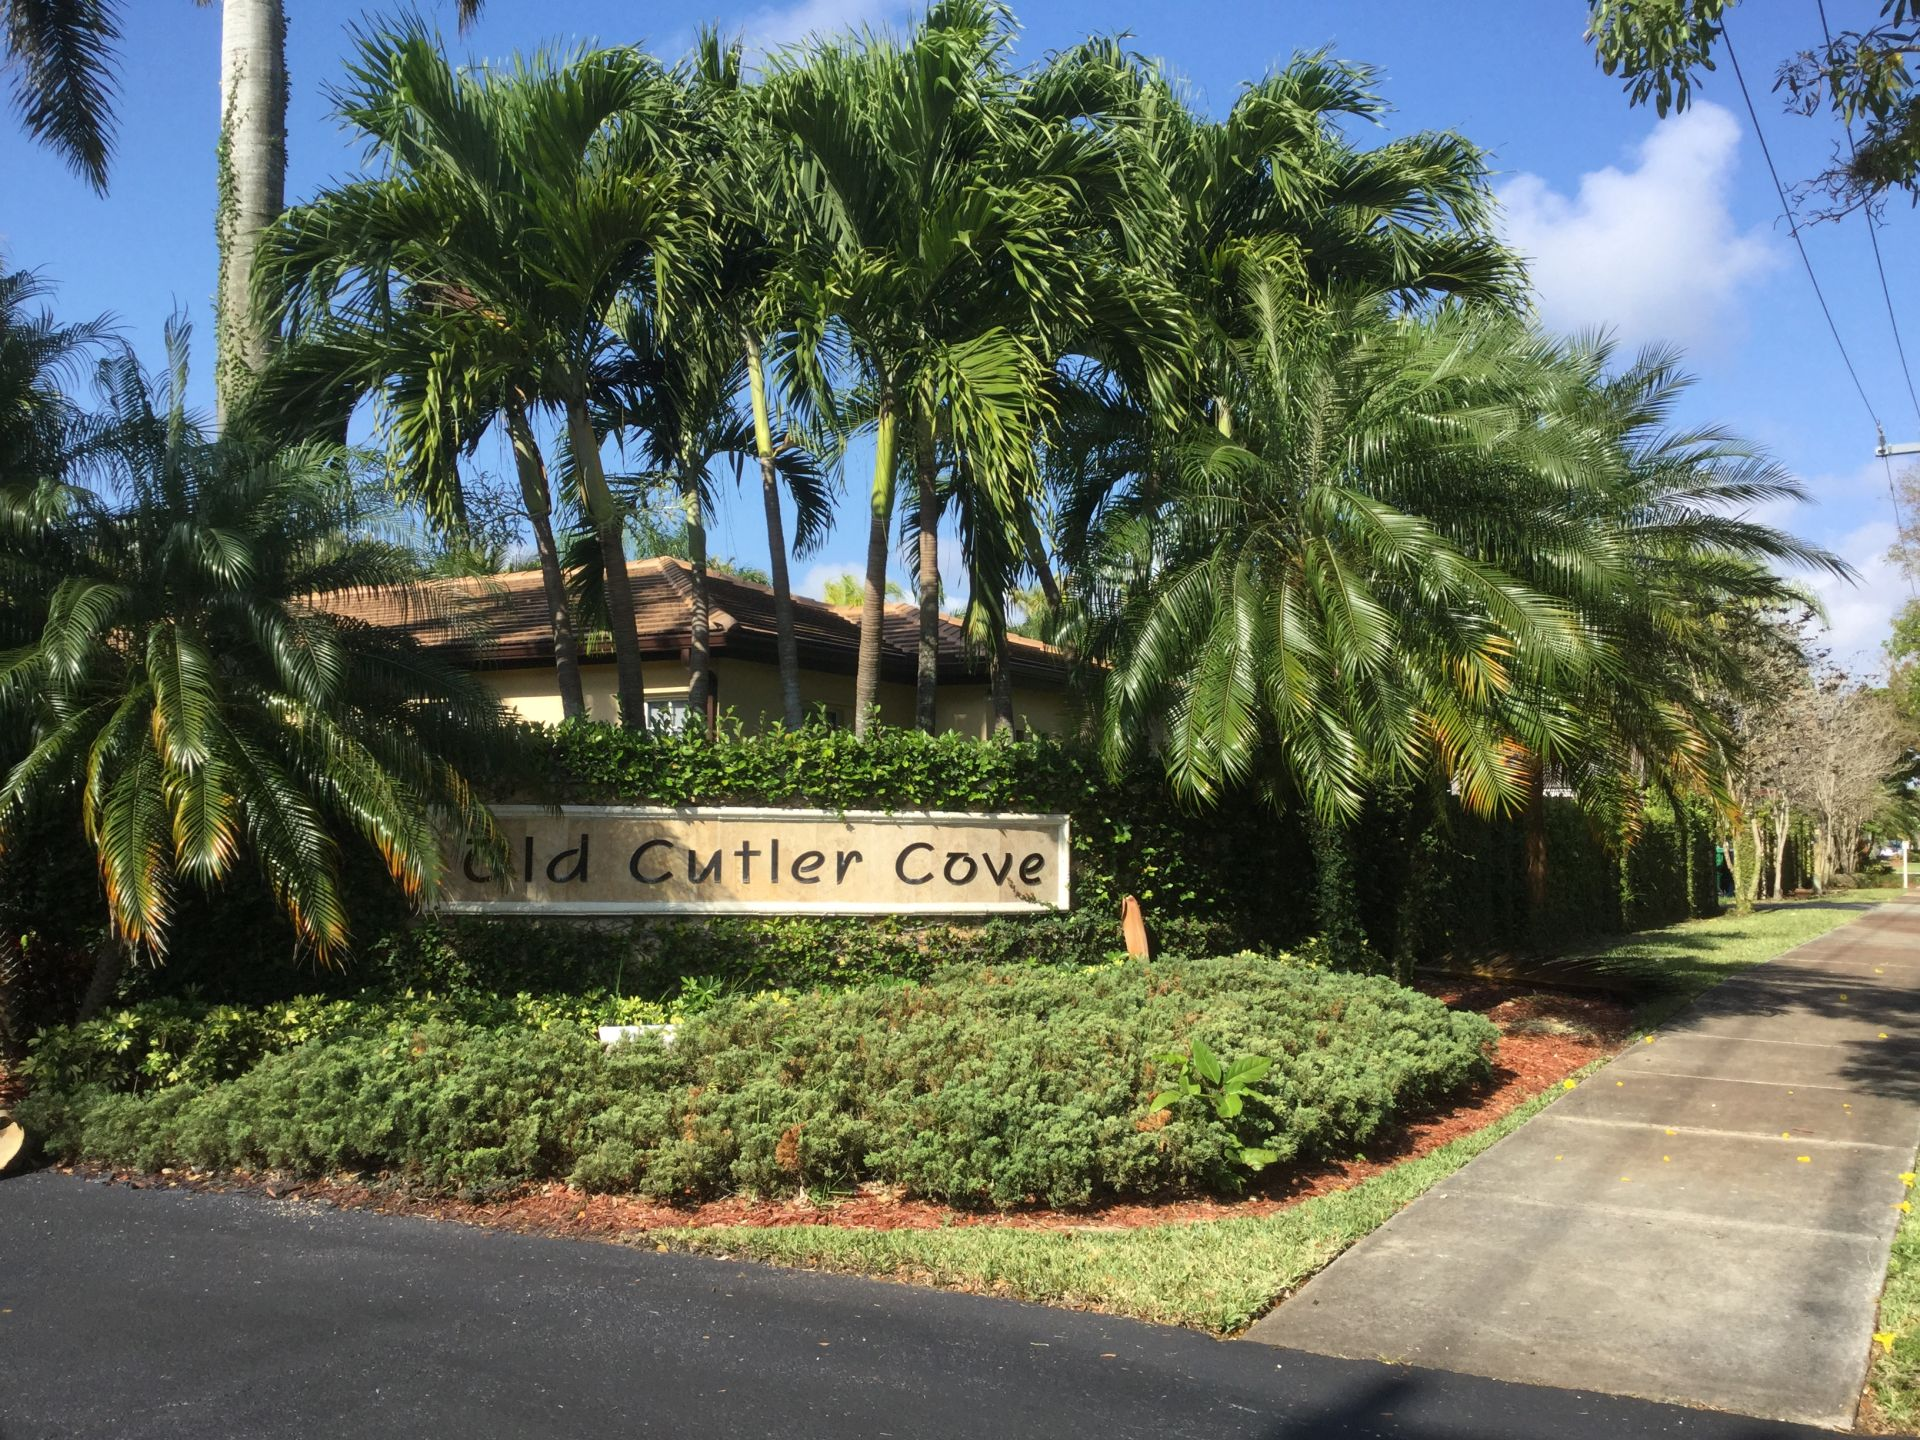 Old Cutler Cove